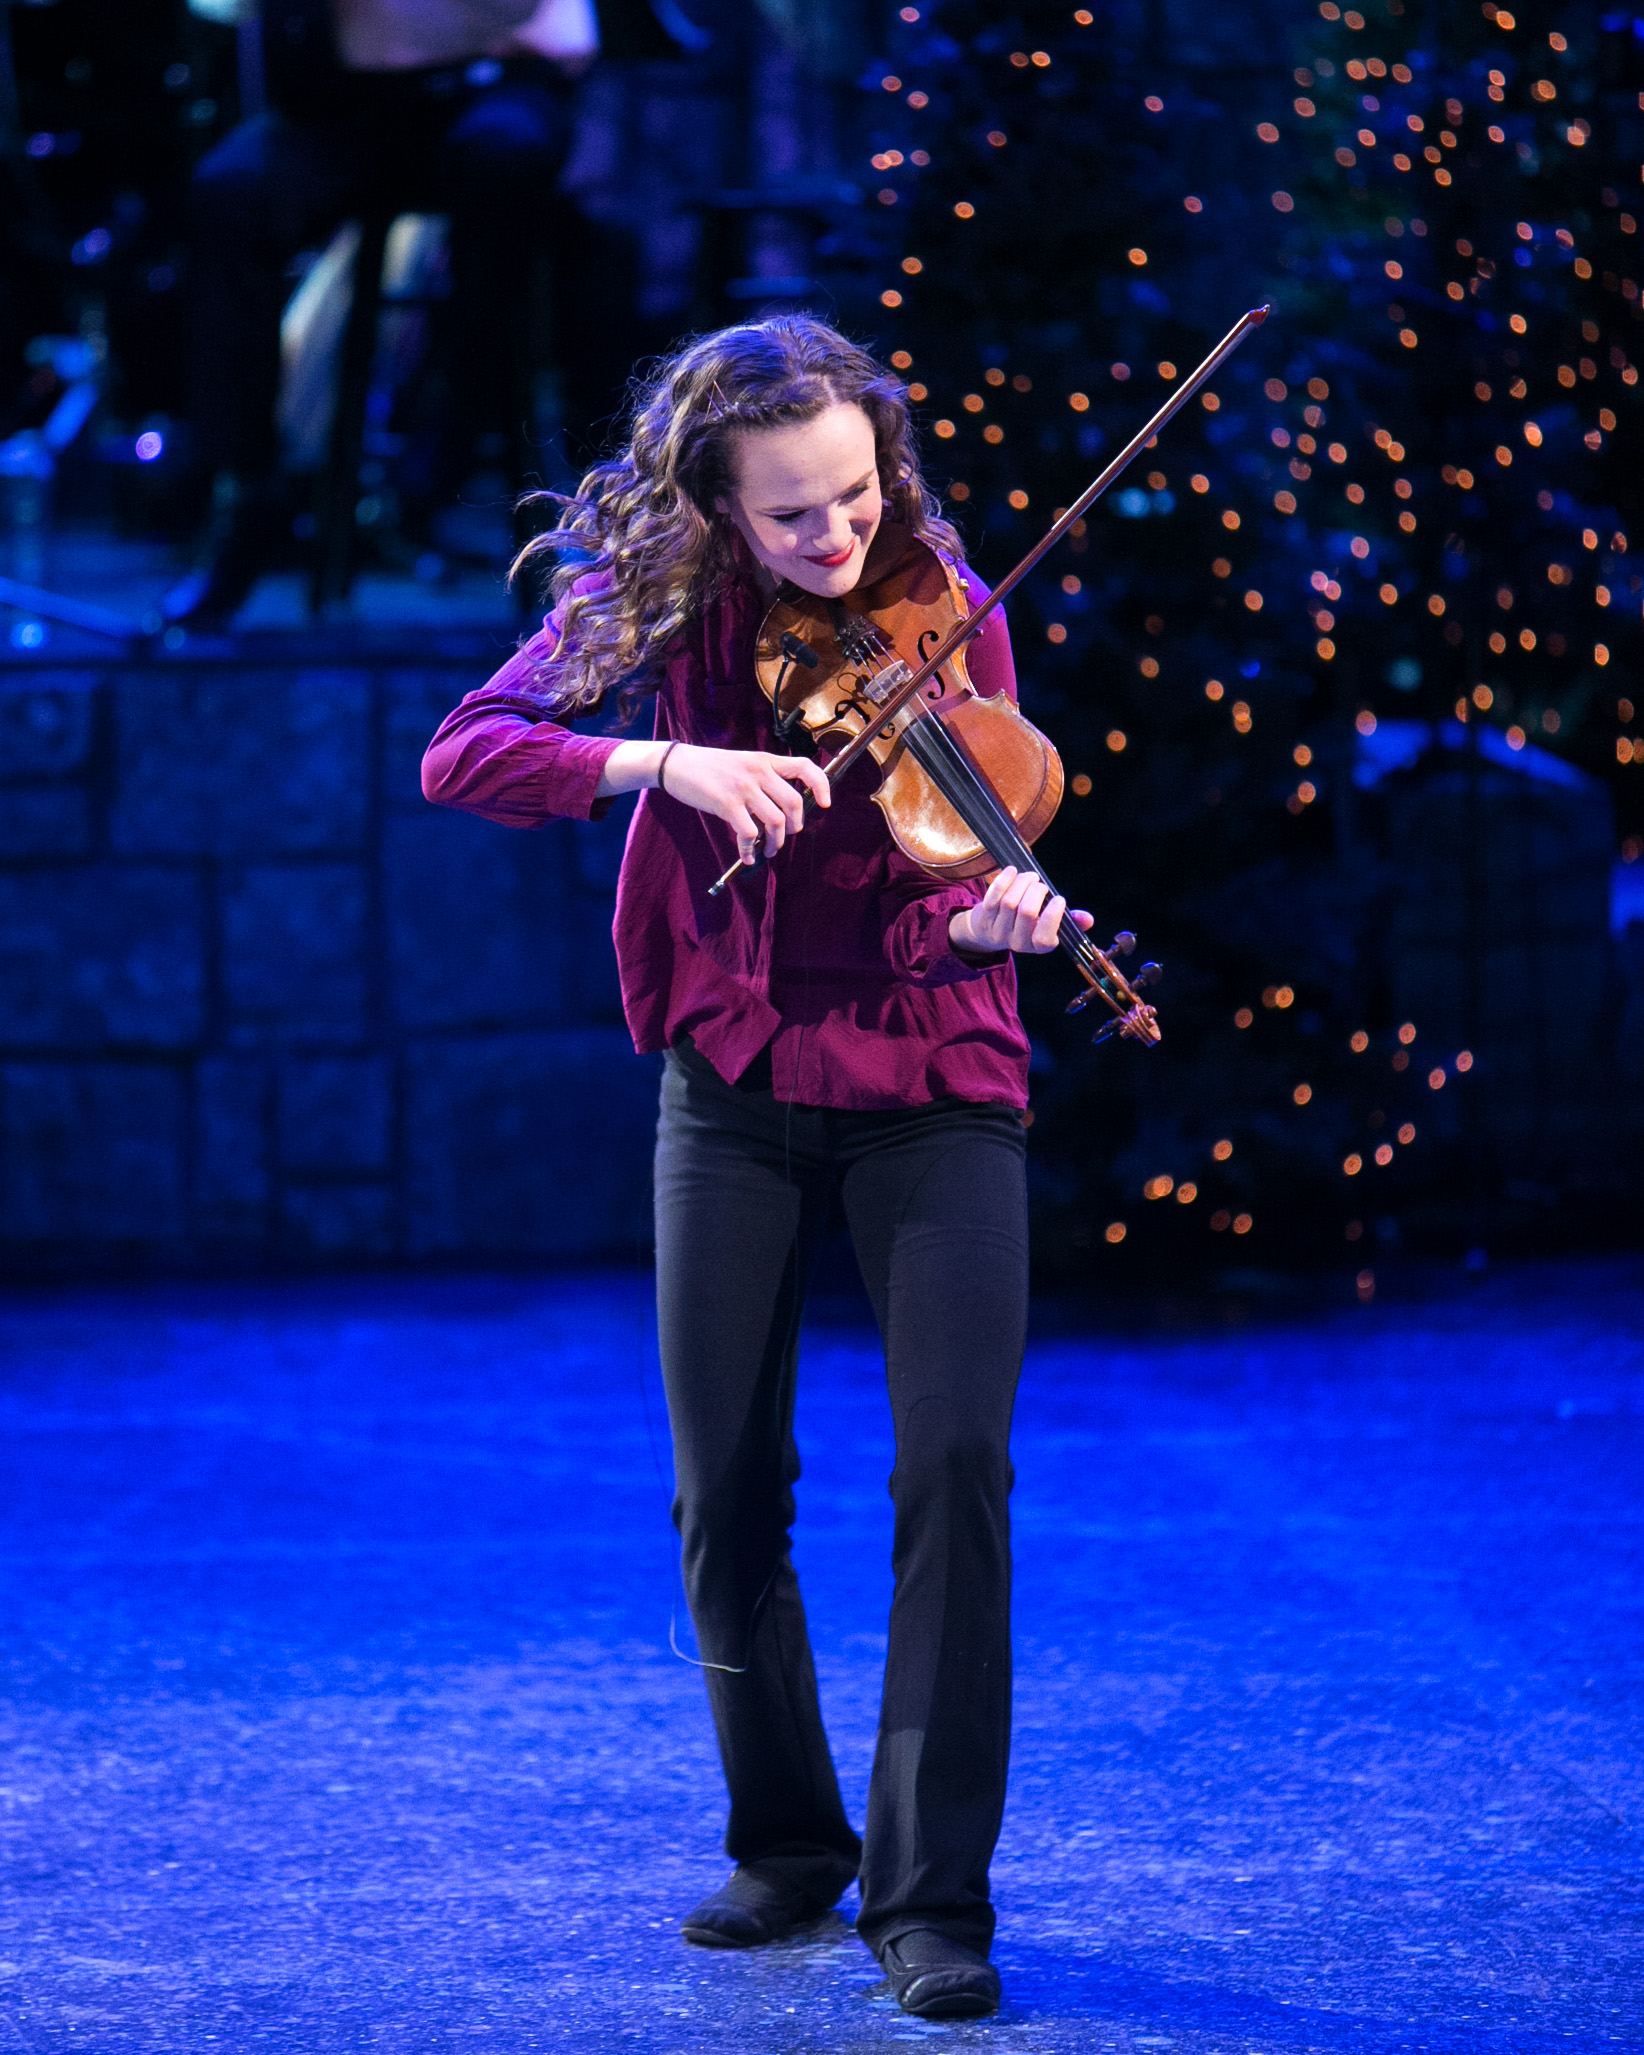 Aurianna Mann performing a fiddle solo for Mountain Strings at Christmas Around the World.